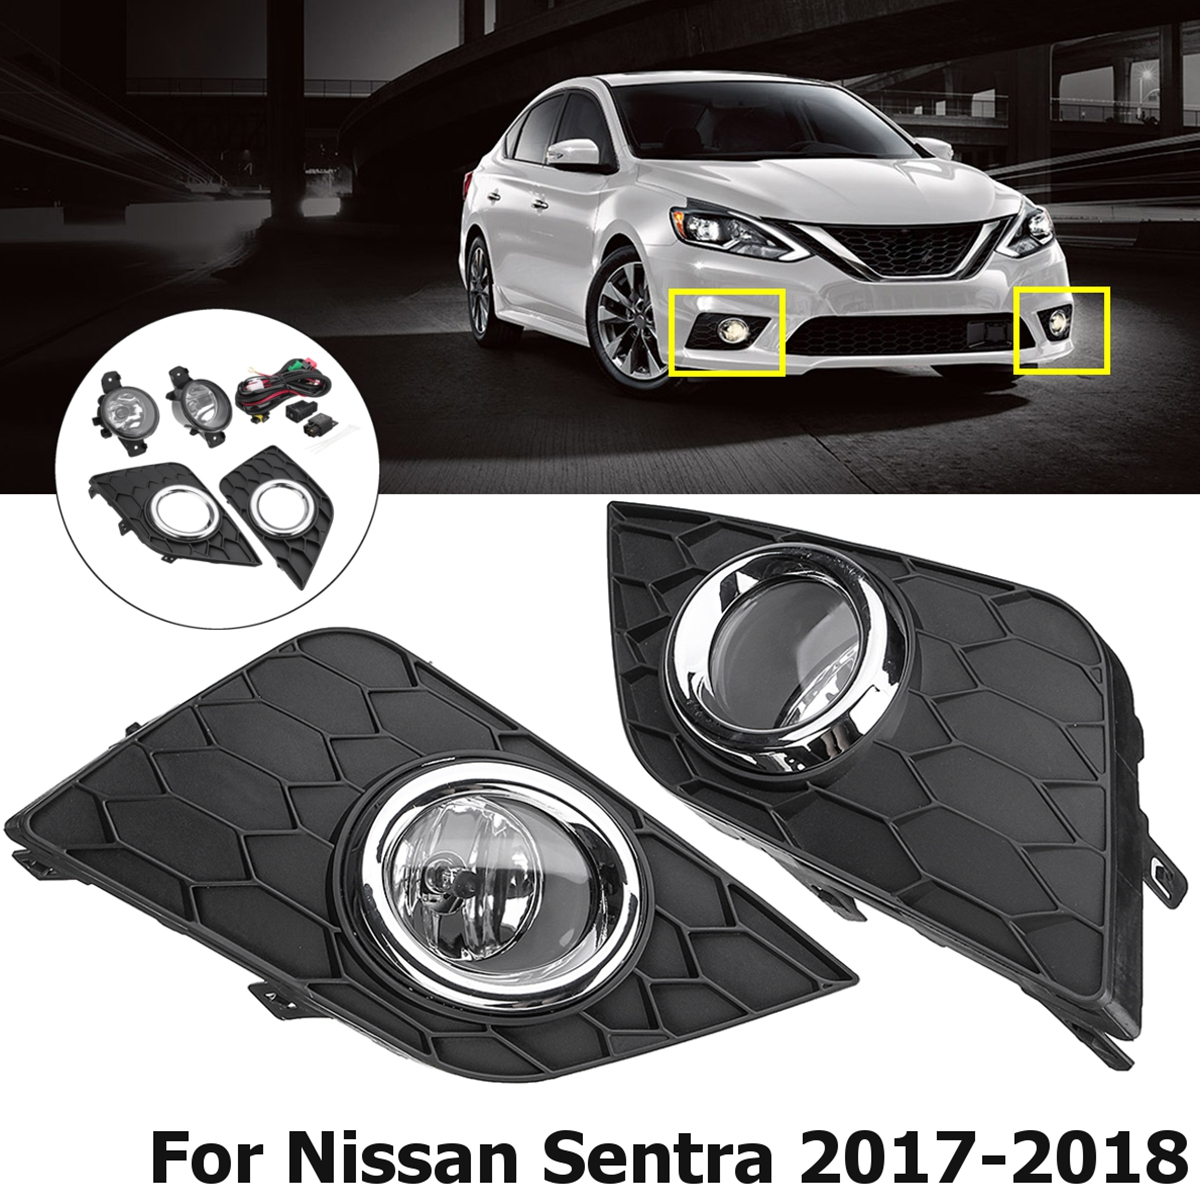 for Nissan Sentra 2017 2018 1 PairCar Front  bumper Lamp Grilles Cover with Harness Day Running Light Amber Fog Lights for Nissan Sentra 2017 2018 1 PairCar Front  bumper Lamp Grilles Cover with Harness Day Running Light Amber Fog Lights